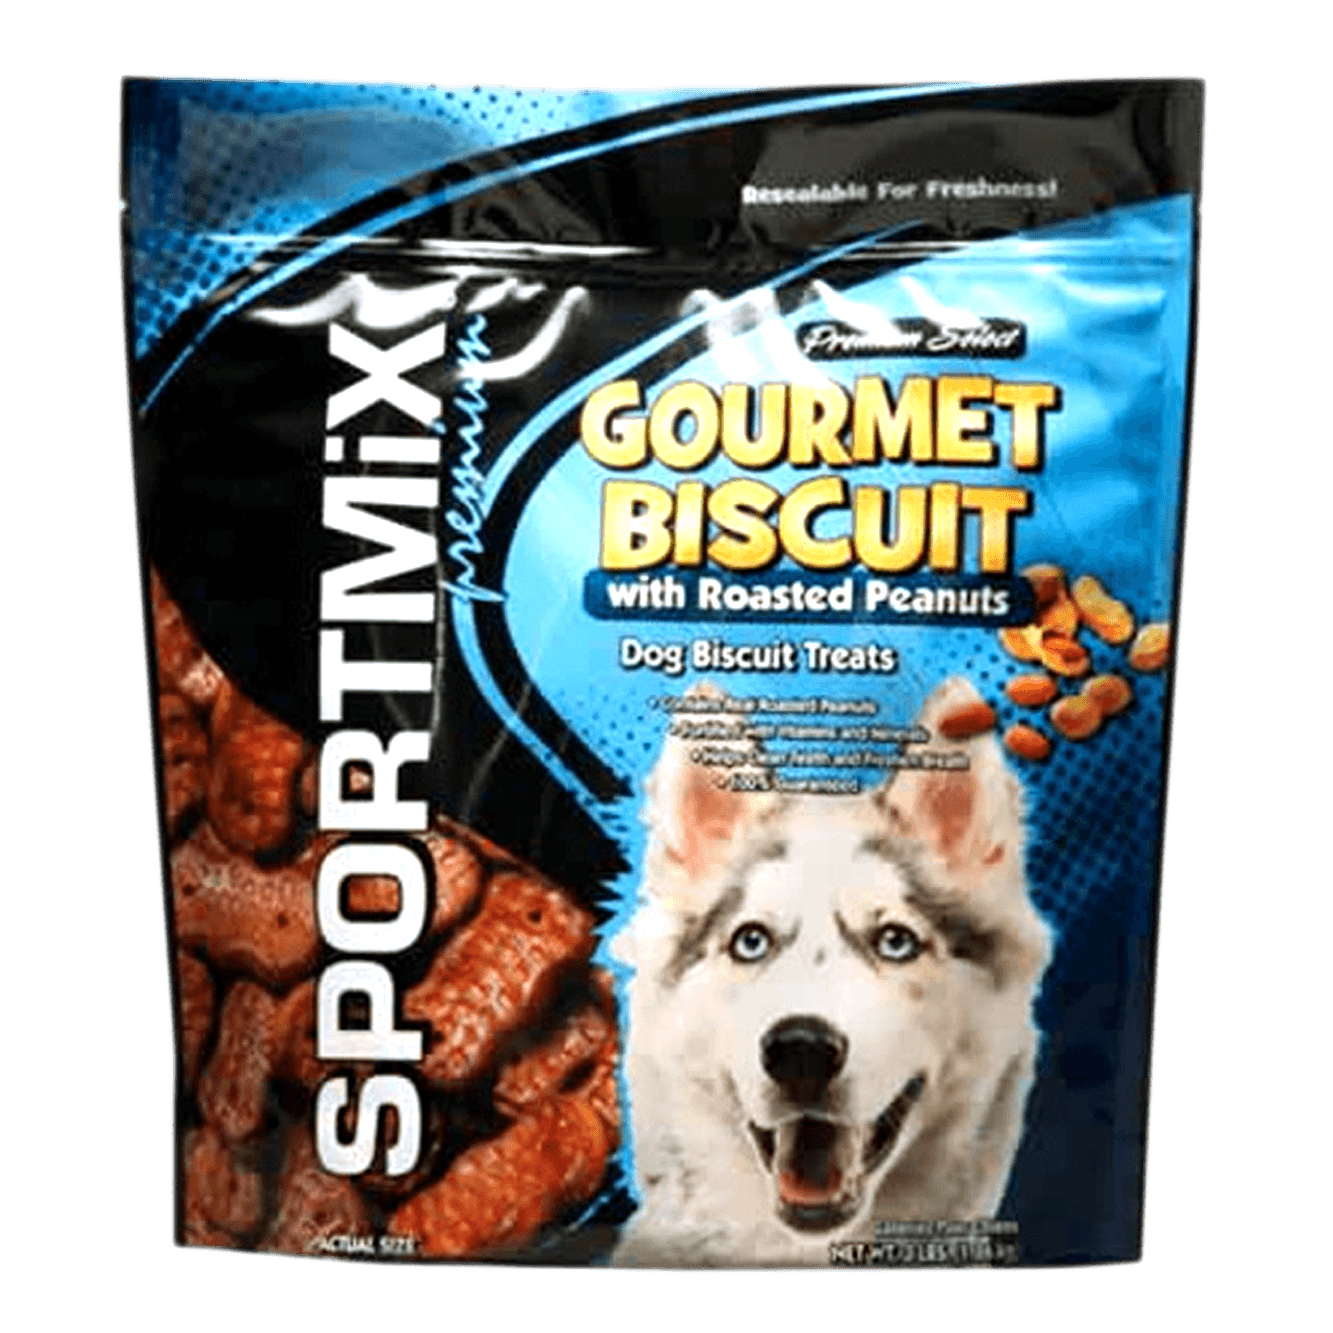 Gourmet Biscuit with Roasted Peanuts